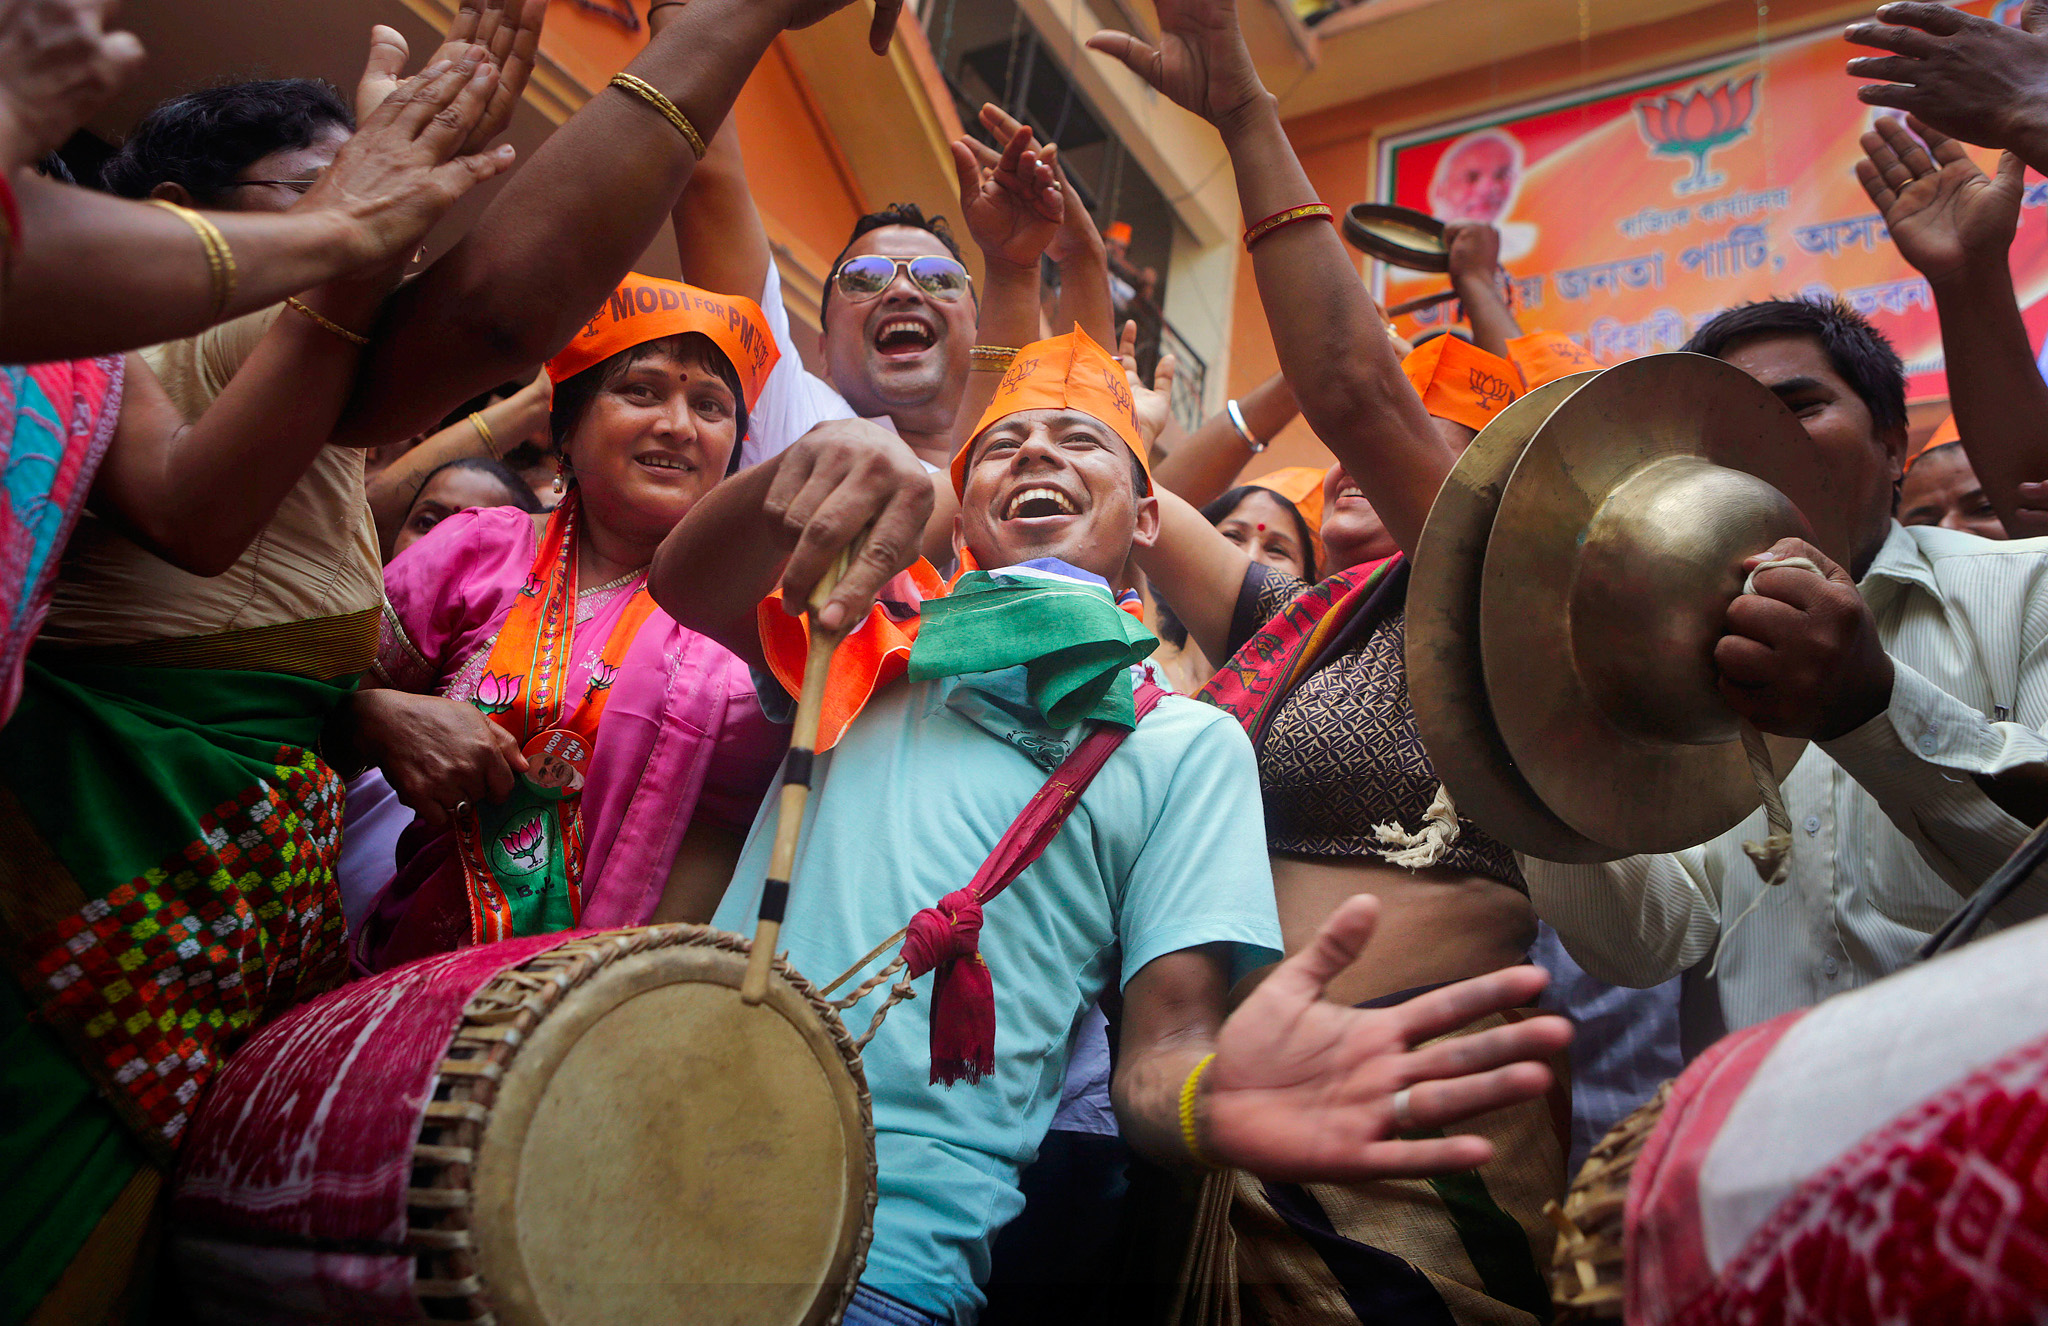 Bharatiya Janata Party (BJP) supporters celebrate the party's winning preliminary result outside their office in Gauhati, India, Friday, May 16, 2014. India's opposition leader Narendra Modi and his party won national elections in a landslide Friday, preliminary results showed, driving the long-dominant Congress party out of power in the most commanding victory India has seen in more than a quarter century. (AP Photo/Anupam Nath)